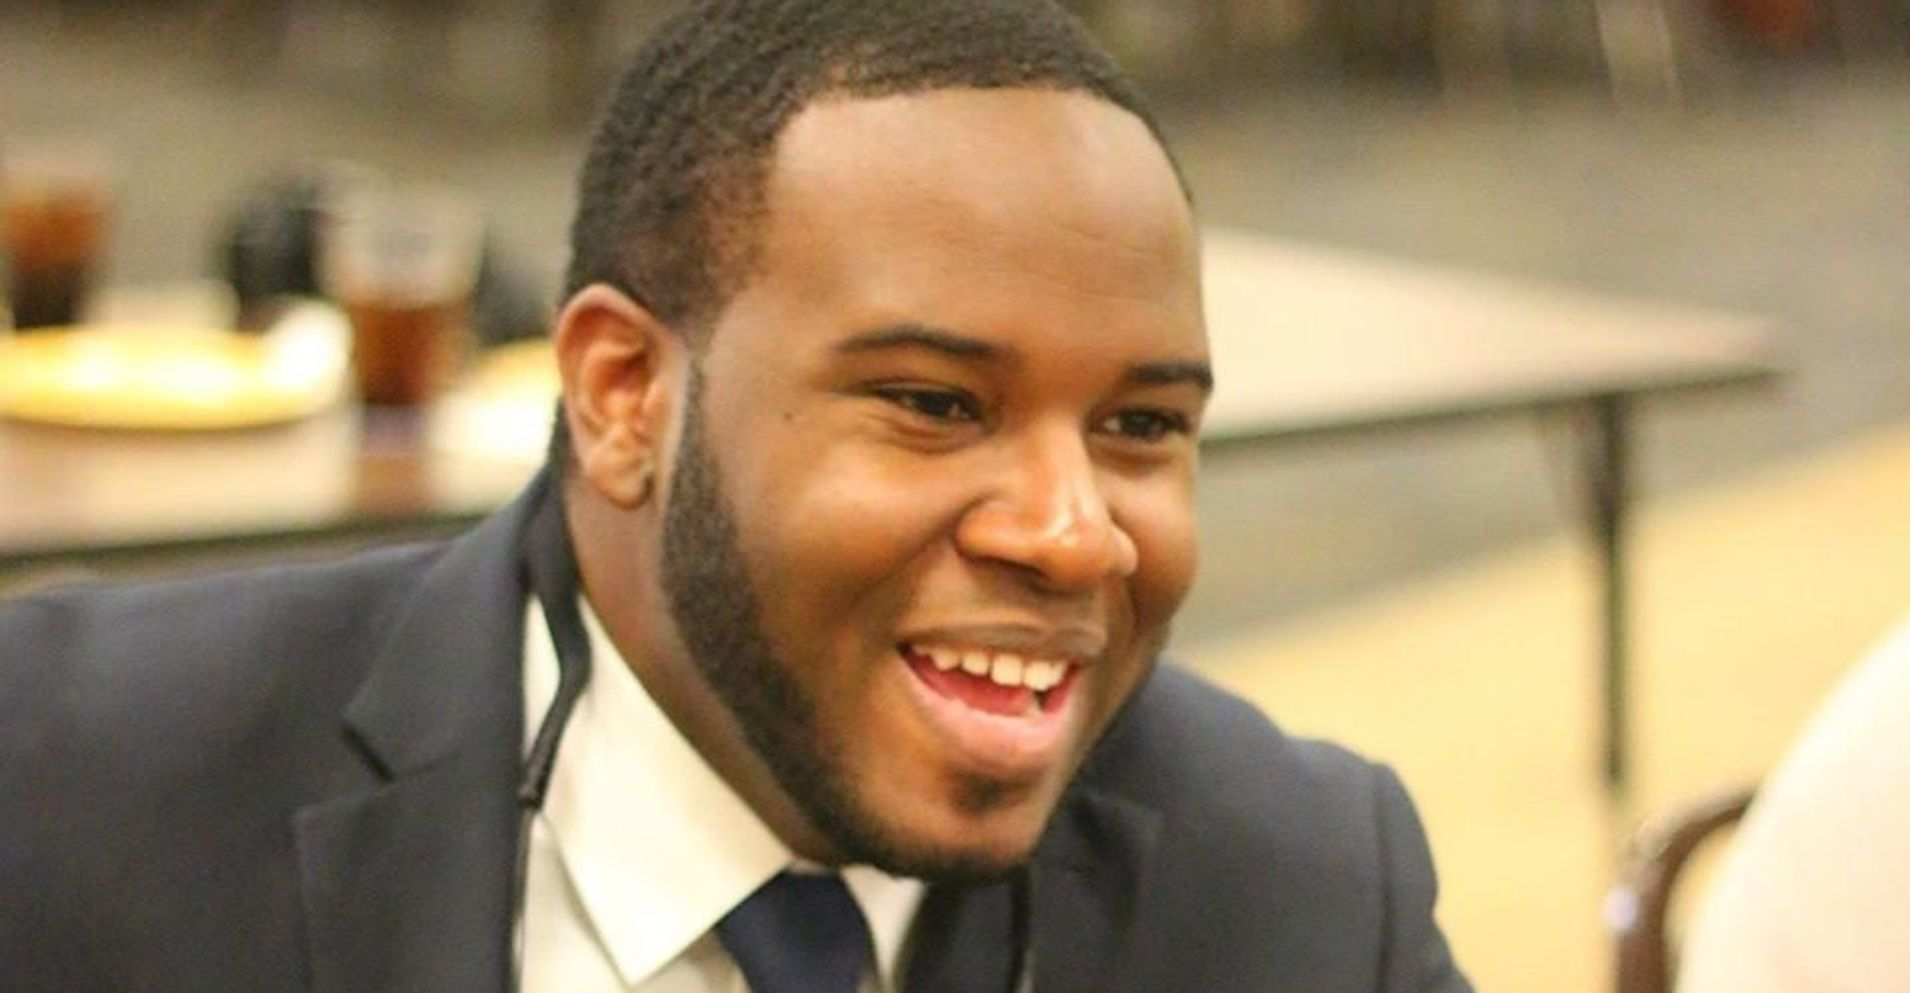 Search Of Botham Jean's Apartment Ignites Outrage Over Victim's 'Character Assassination' | HuffPost